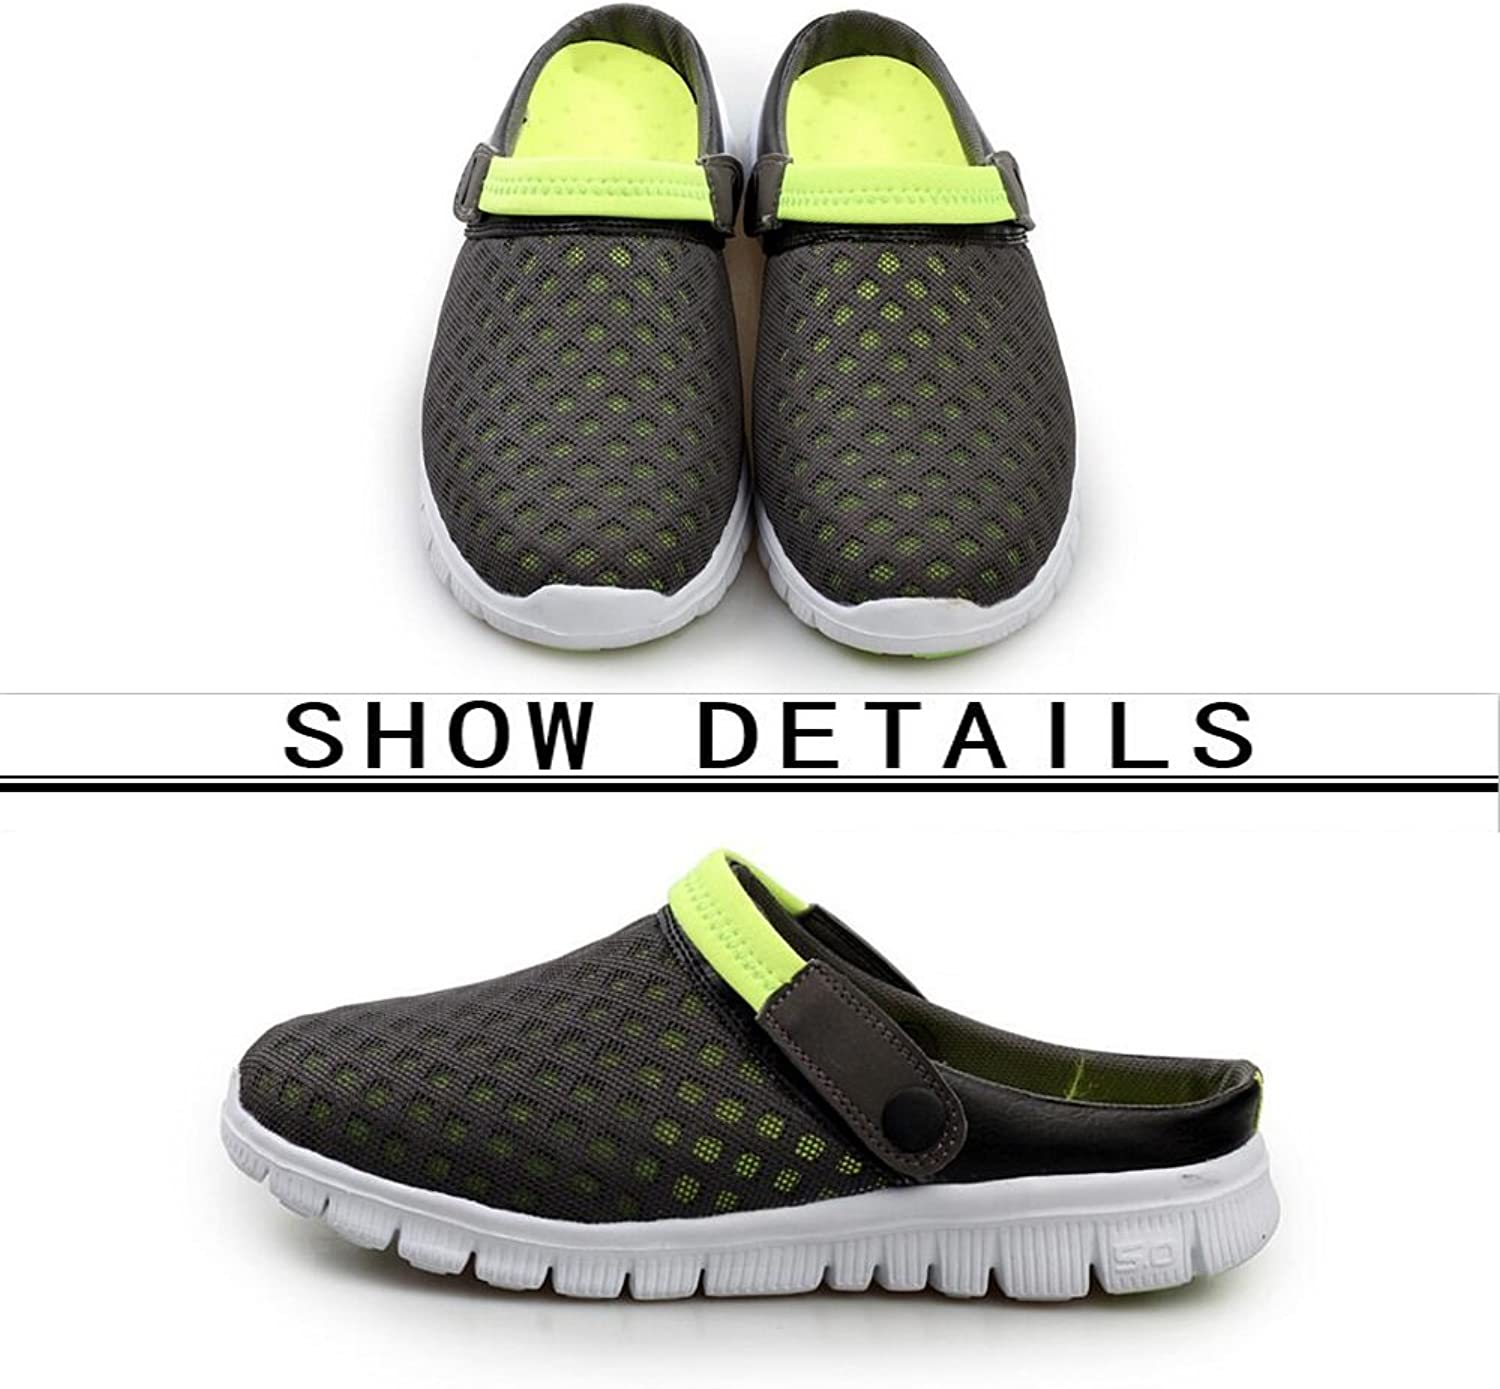 197a73f10d257 36-46cm Holes Drainage with shoes Garden Walking Outdoor - Sandals ...